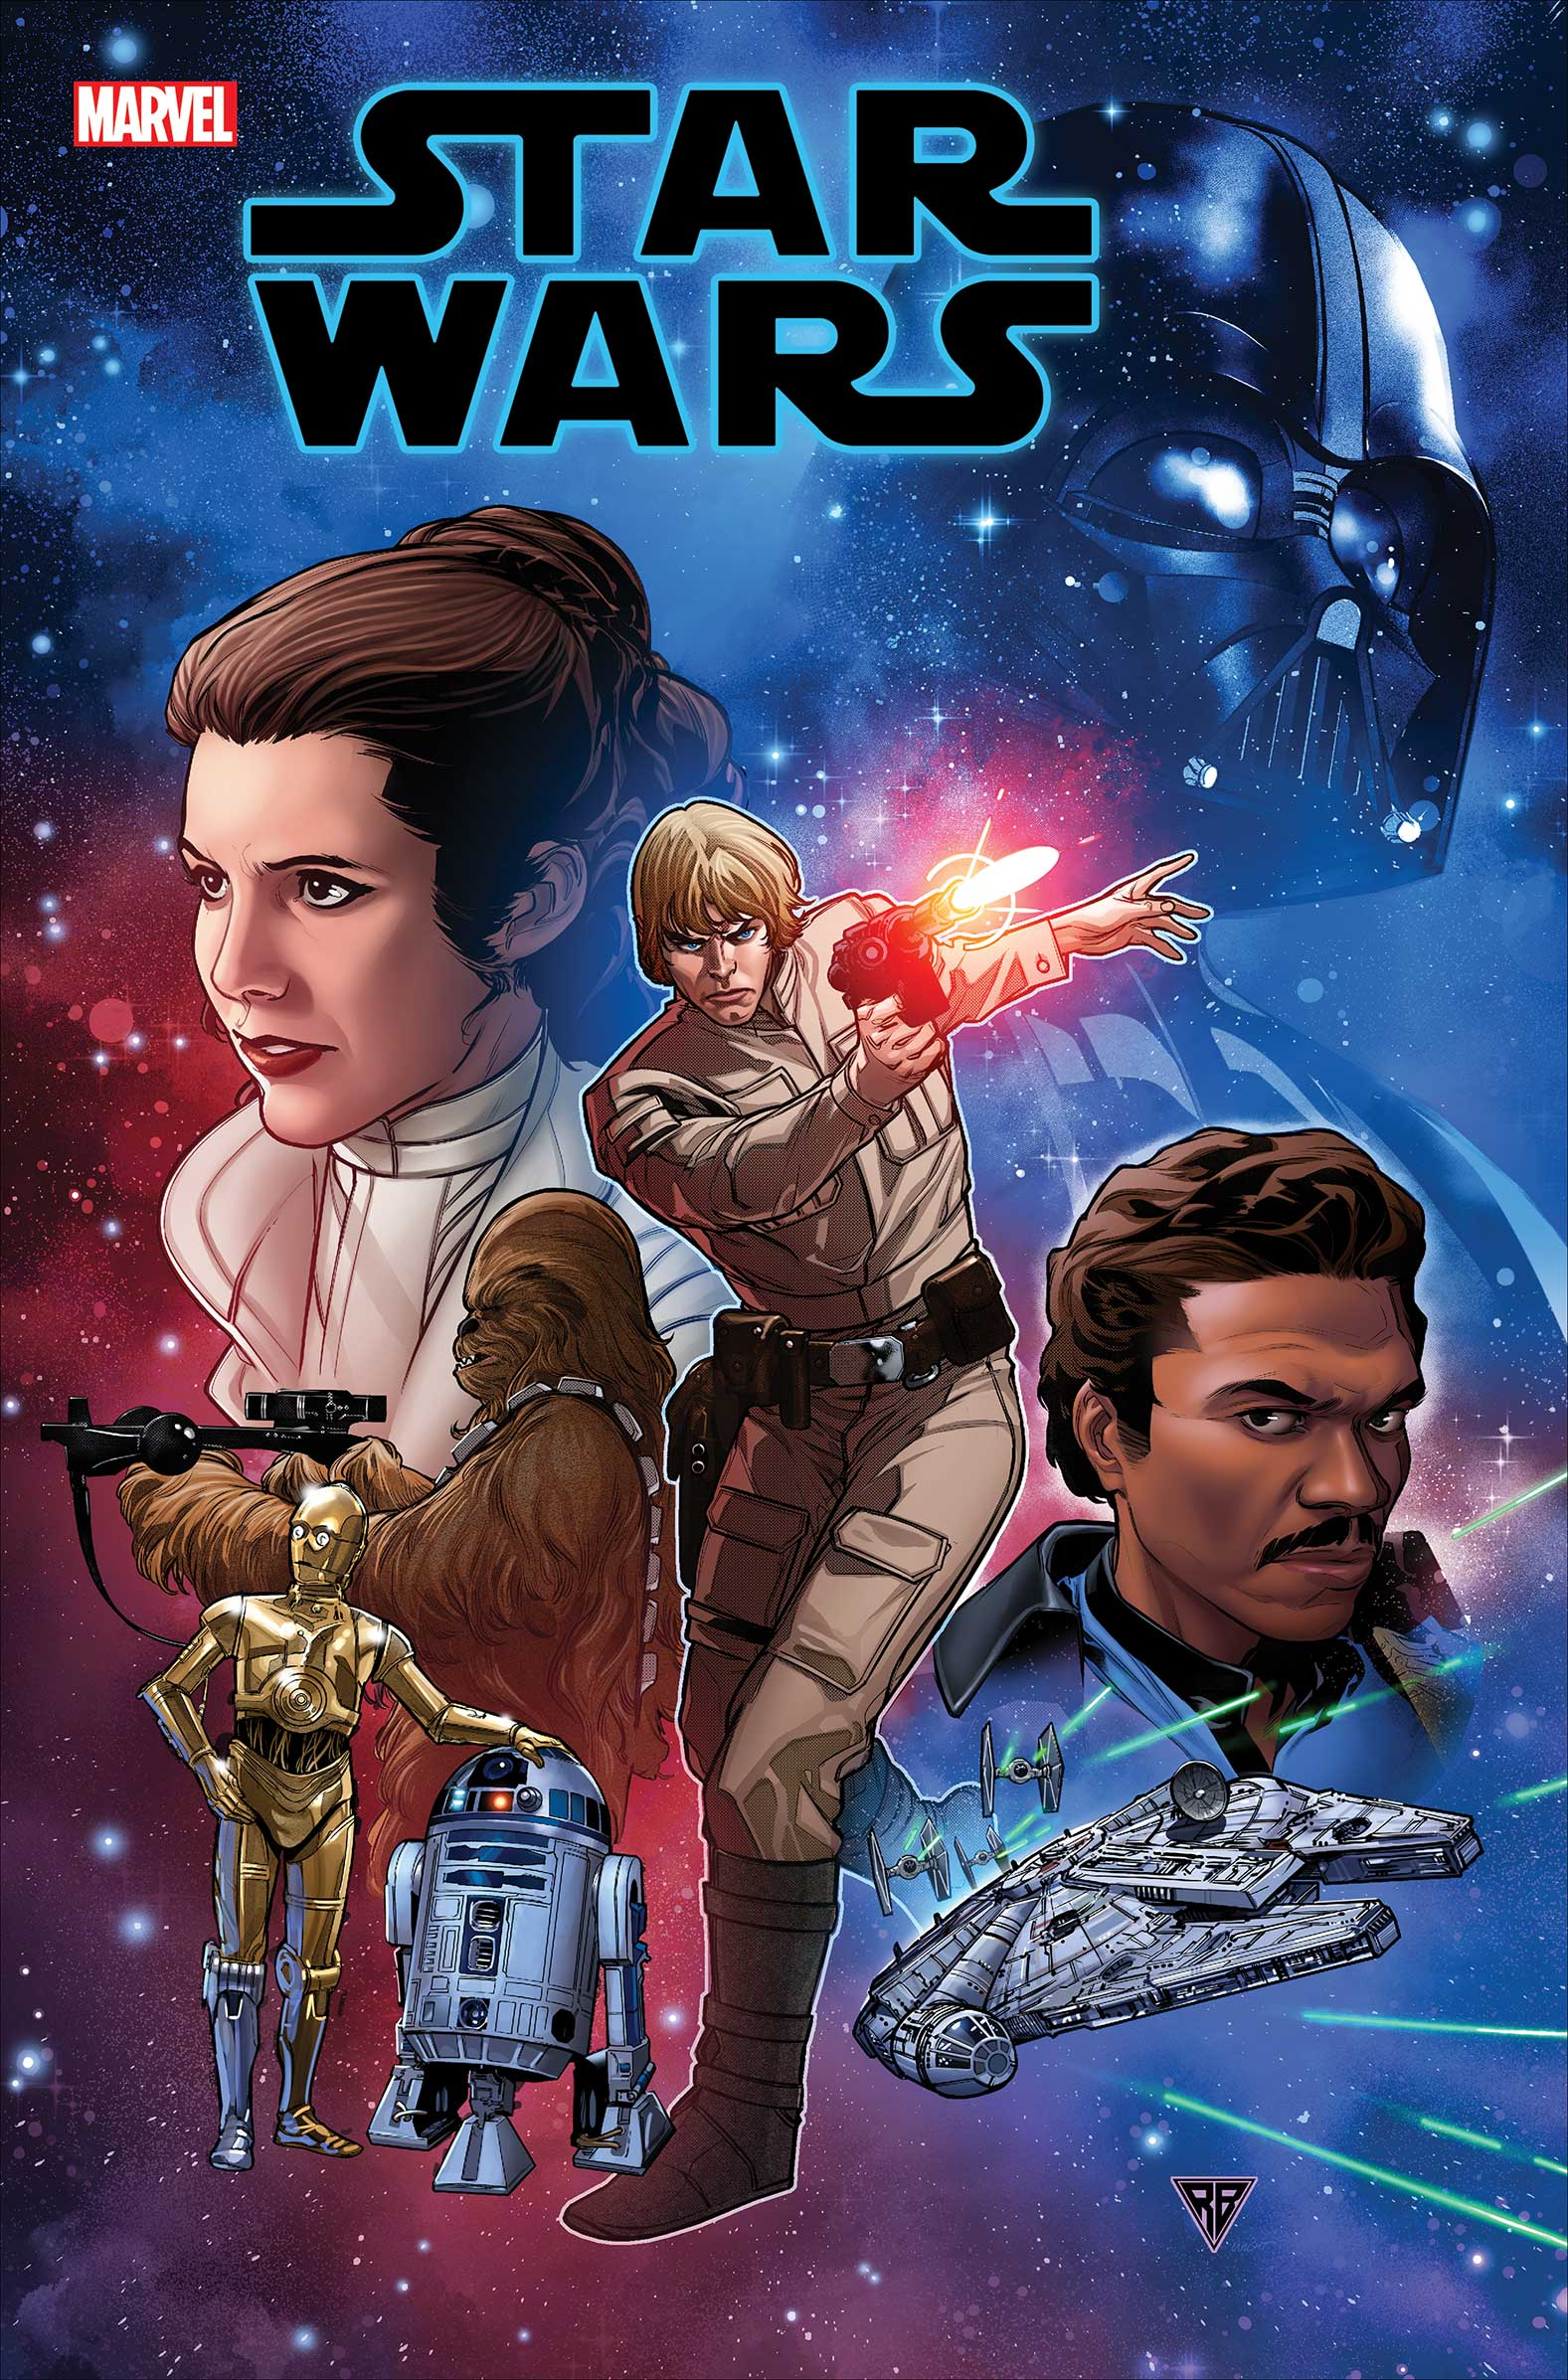 Marvel S January Solicitations Focus On The Relaunch Of The Star Wars Ongoing Series Fantha Tracks